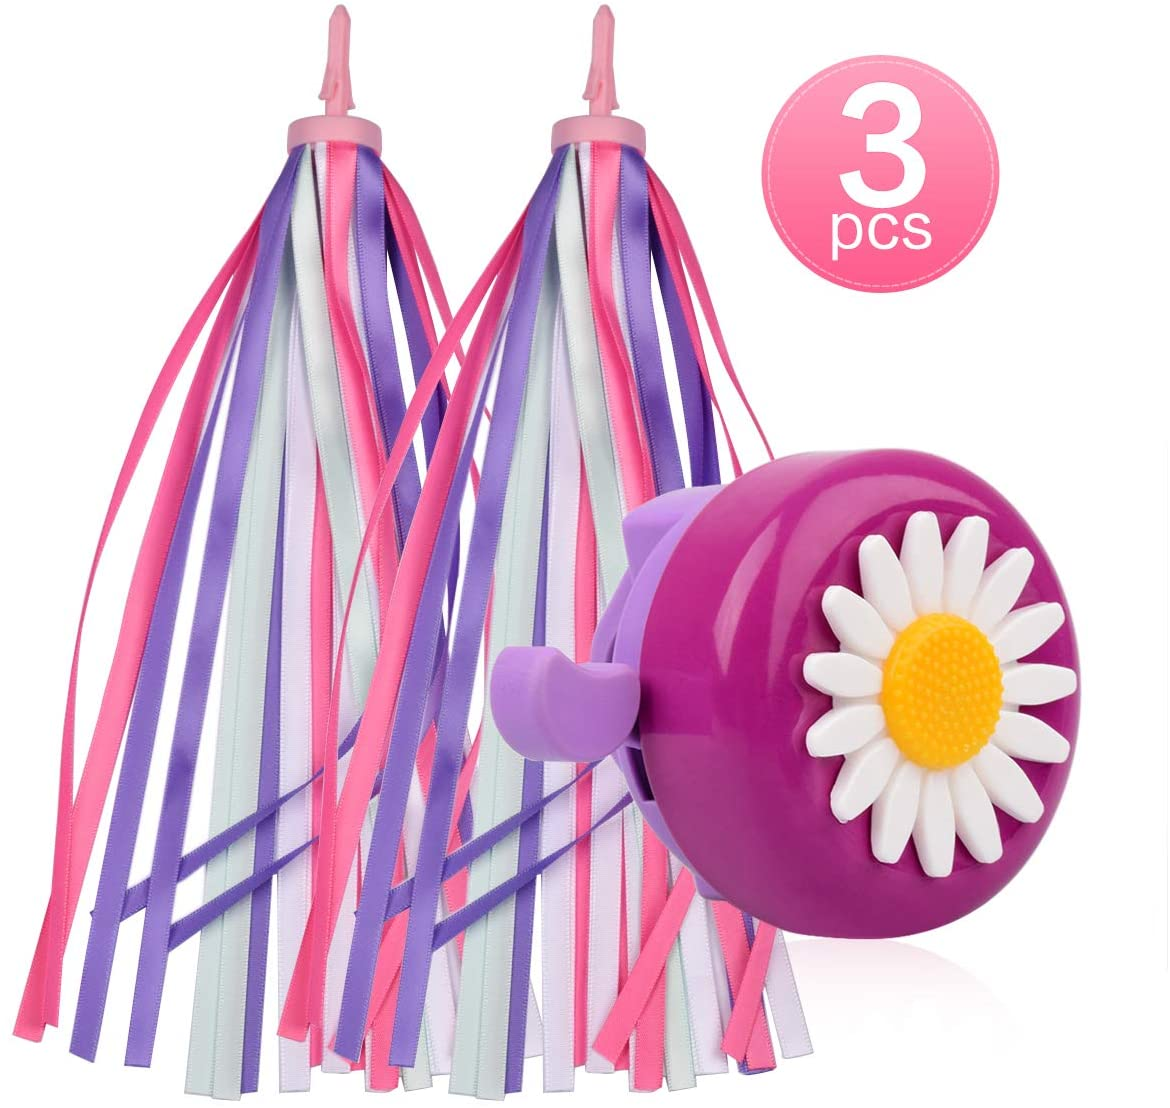 U-LIAN Kids Bike Bell and Streamers for Girls-1 Pack Flower Bicycle Bell with 2 Pack Handlebar Streamers Scooter Tassels for Childrens Bike Accessories